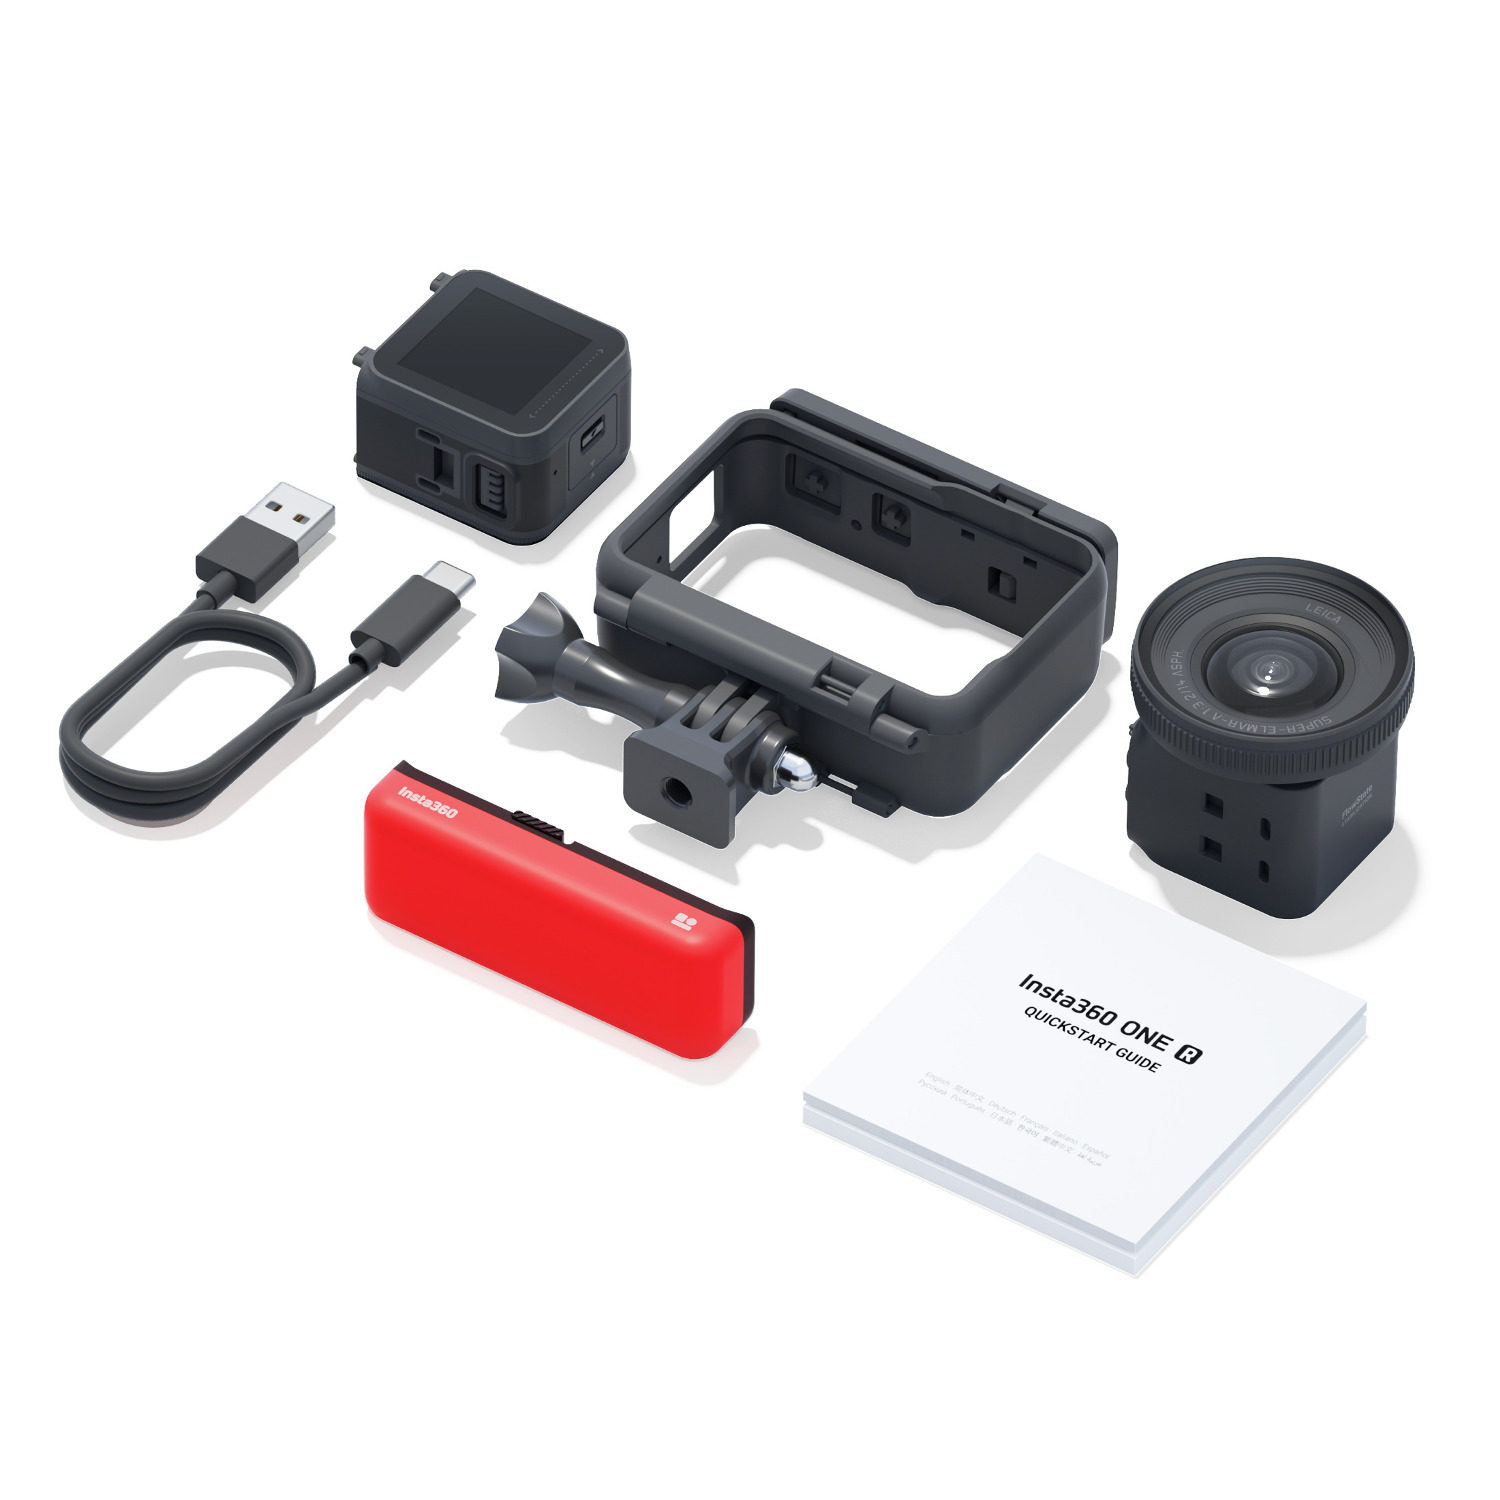 Insta360 One X Skate Bundle (accessories only)